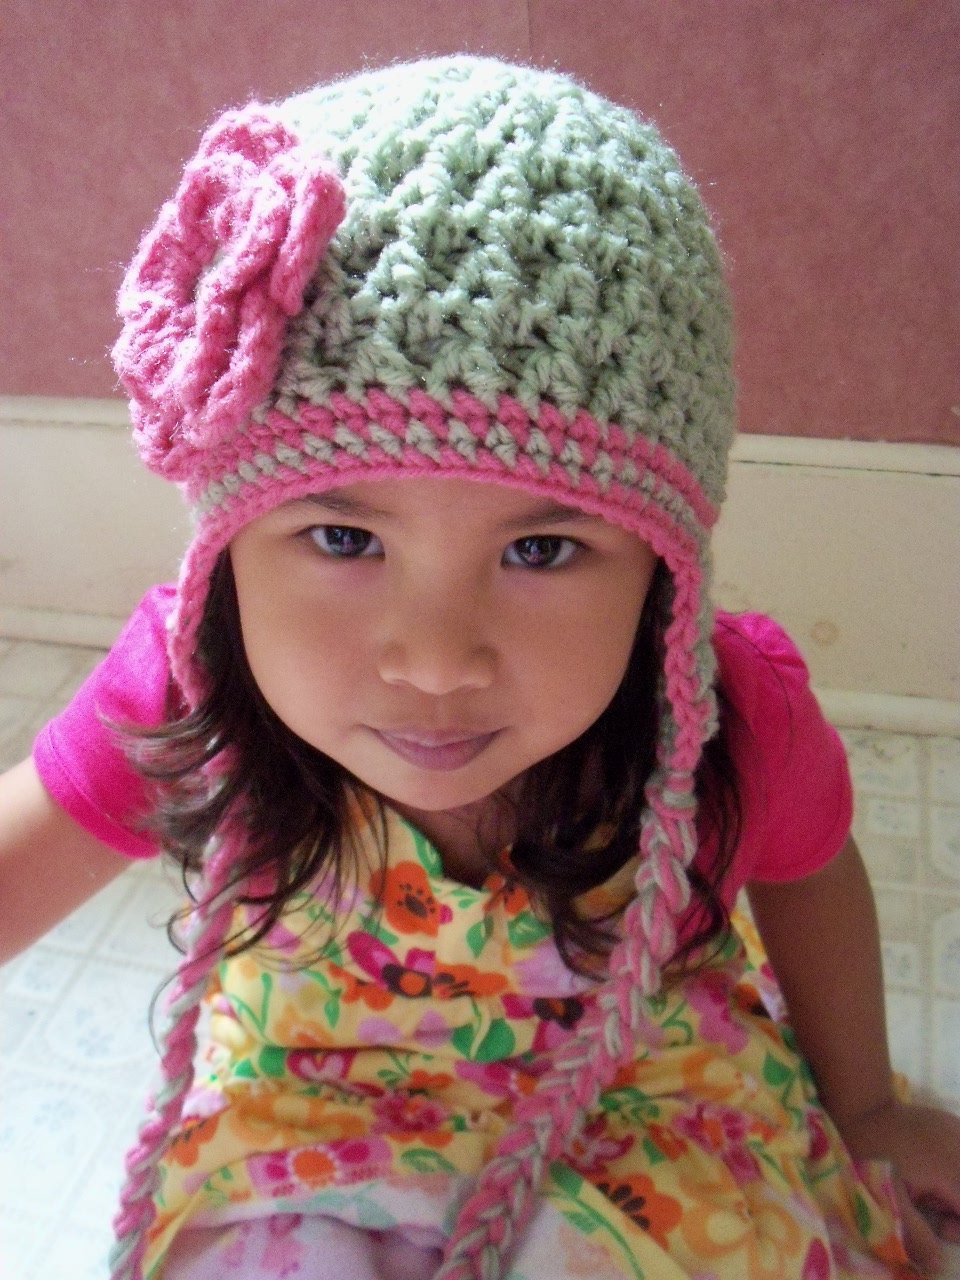 Crochet Girls Hats Beautiful Crochet Children Hattoddler Hat Baby Girl Hat Crochet Of New 46 Ideas Crochet Girls Hats